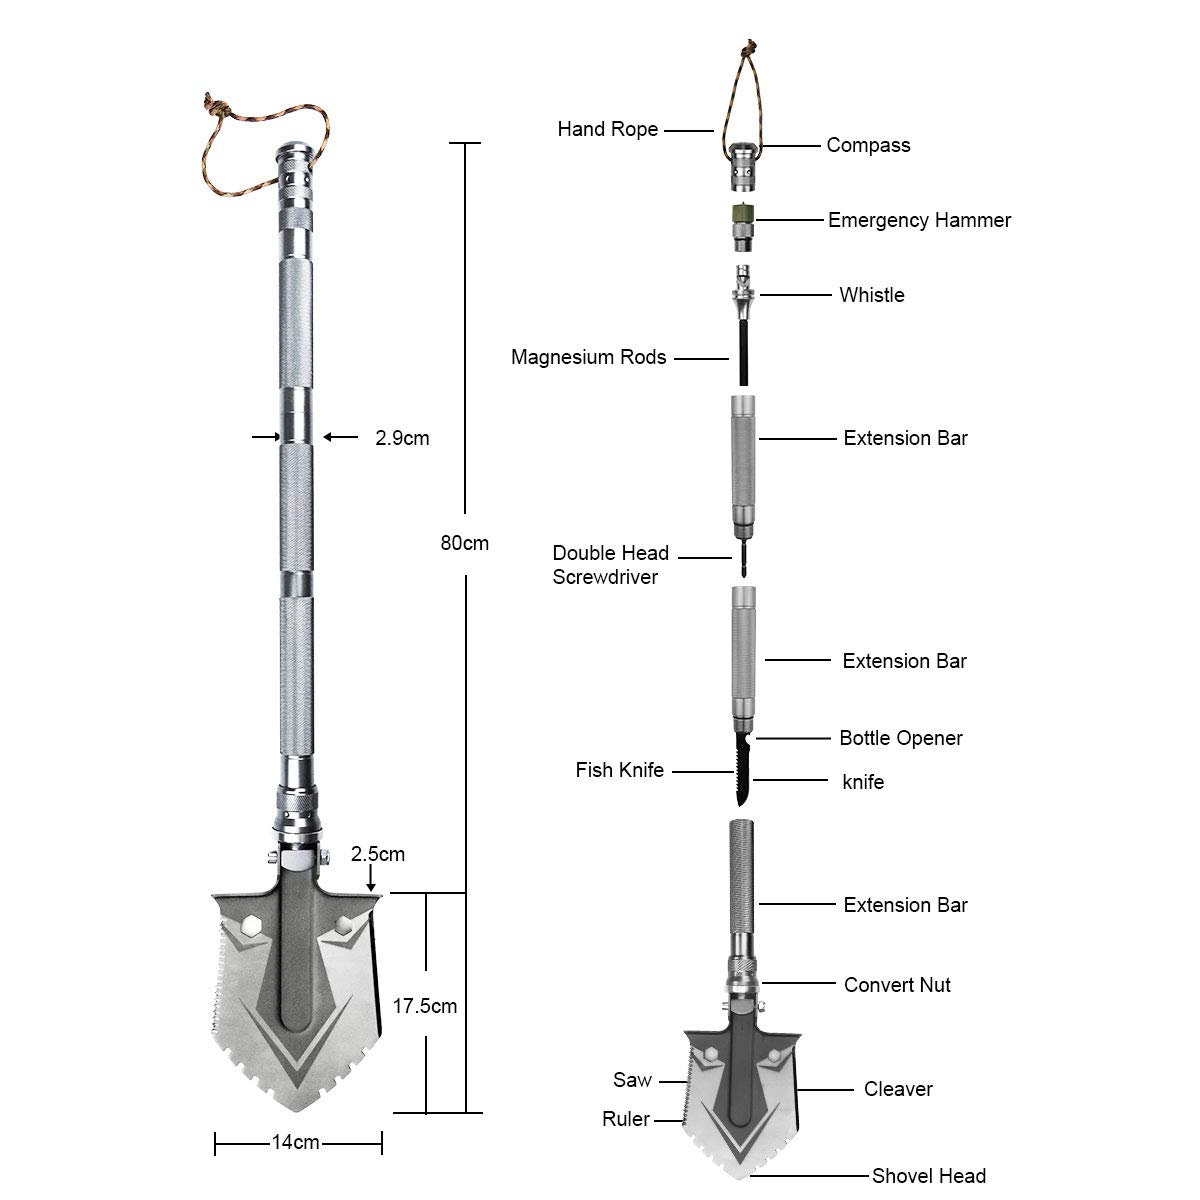 BACOENG Compact Folding Shovel [31 inch Length] with MOLLE Pouch - Tactical Multitool Spade Kit for Camping, Hiking, Backpacking, Fishing, Trench Entrenching Tool etc by BACOENG (Image #2)